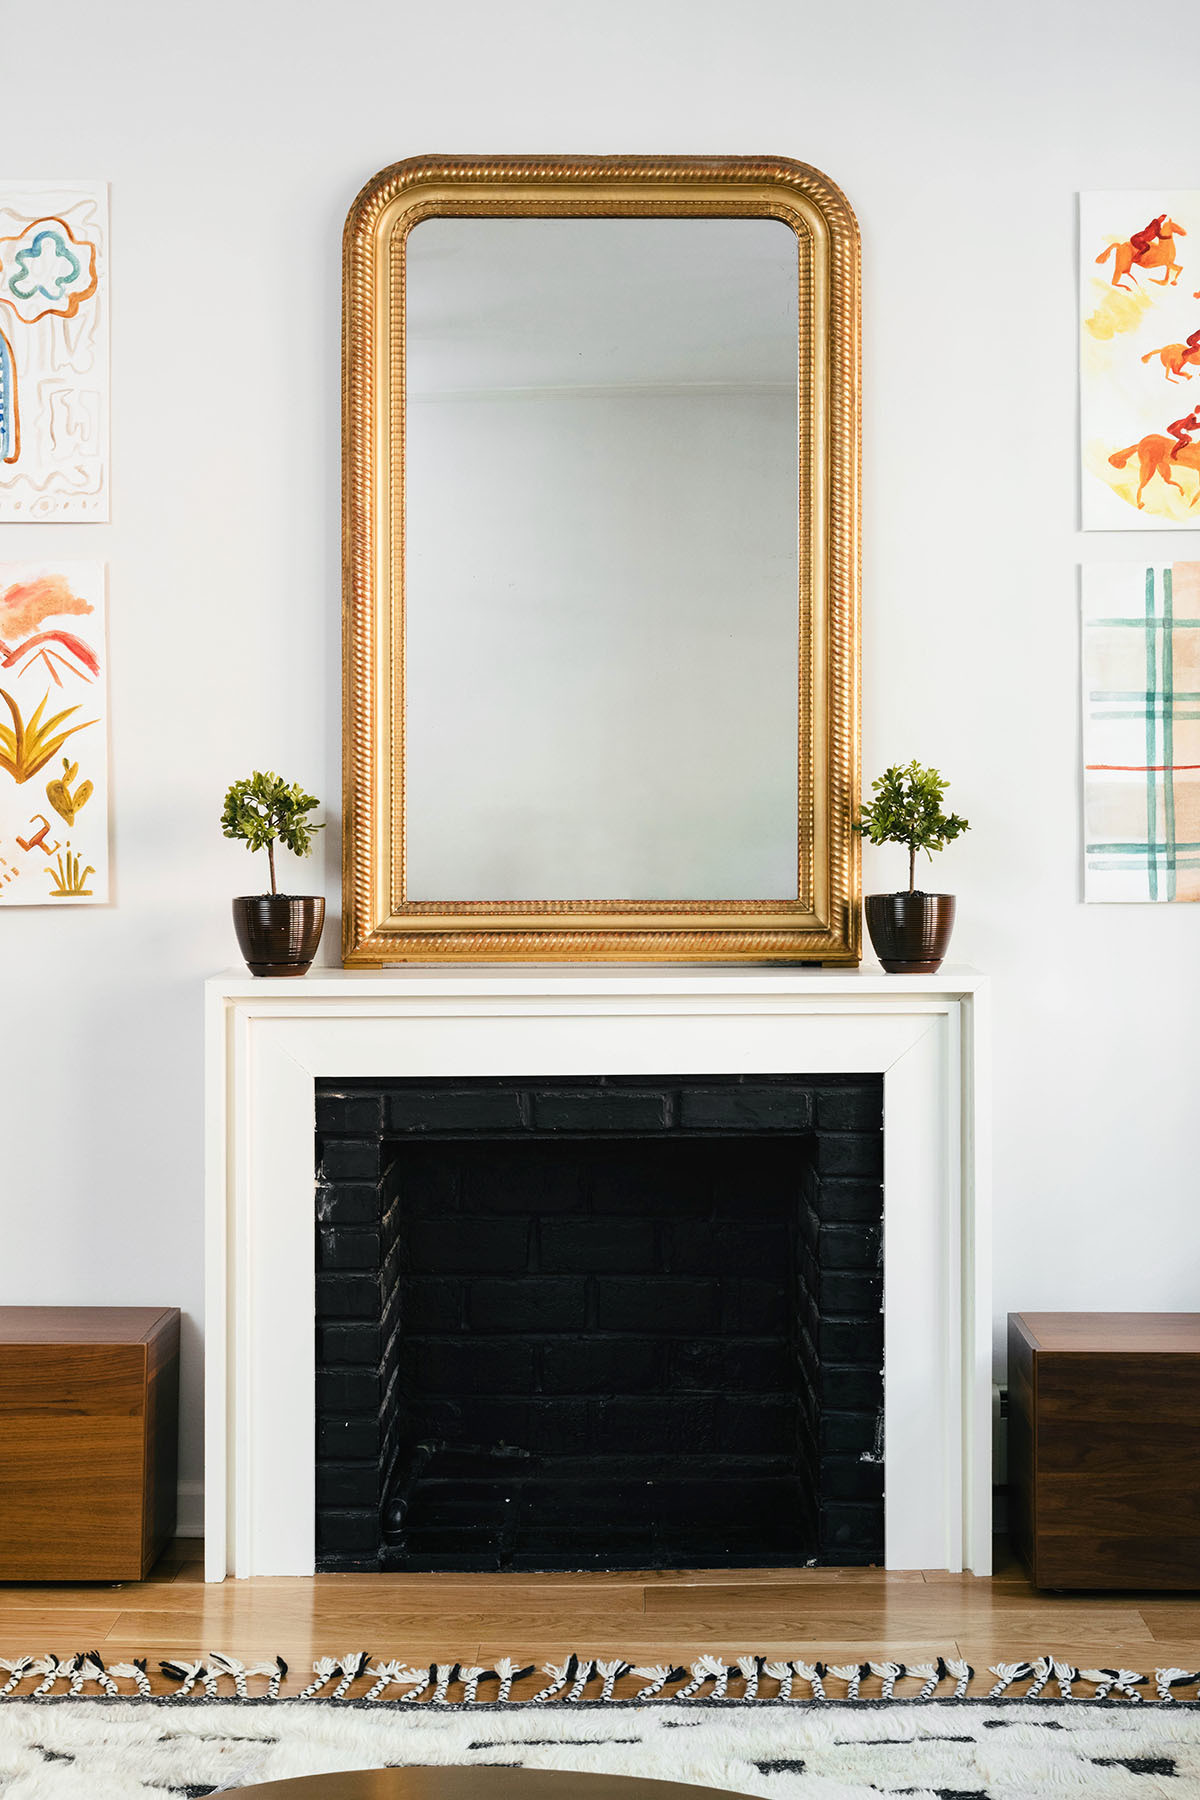 A gilded vintage mirror, sourced via 1stdibs, holds pride of place above the decorative fireplace. Katherine Moffett Artwork | Loloi Rug.